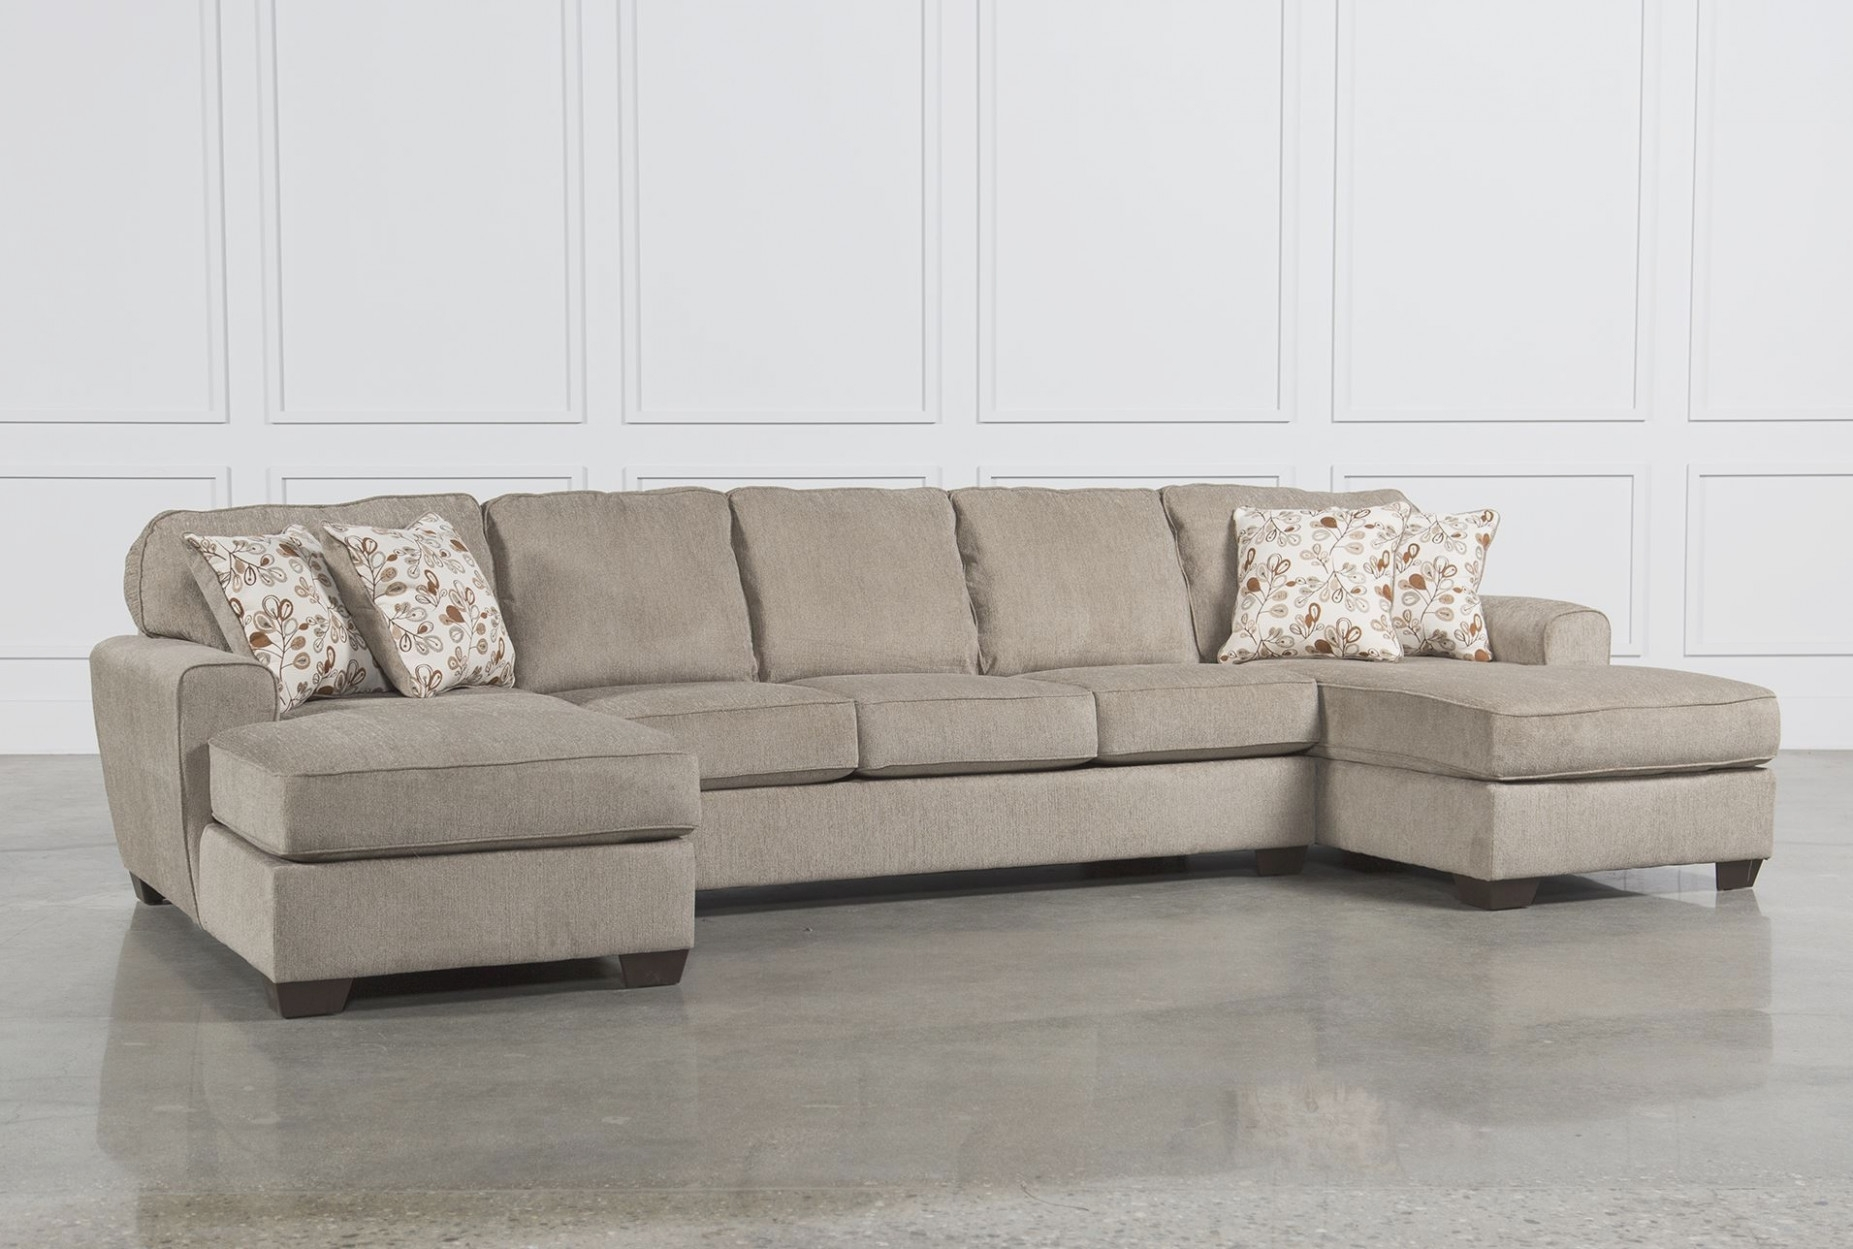 Enchanting Two Piece Sectional Sofa With Chaise Set At Stair pertaining to Kerri 2 Piece Sectionals With Laf Chaise (Image 10 of 30)